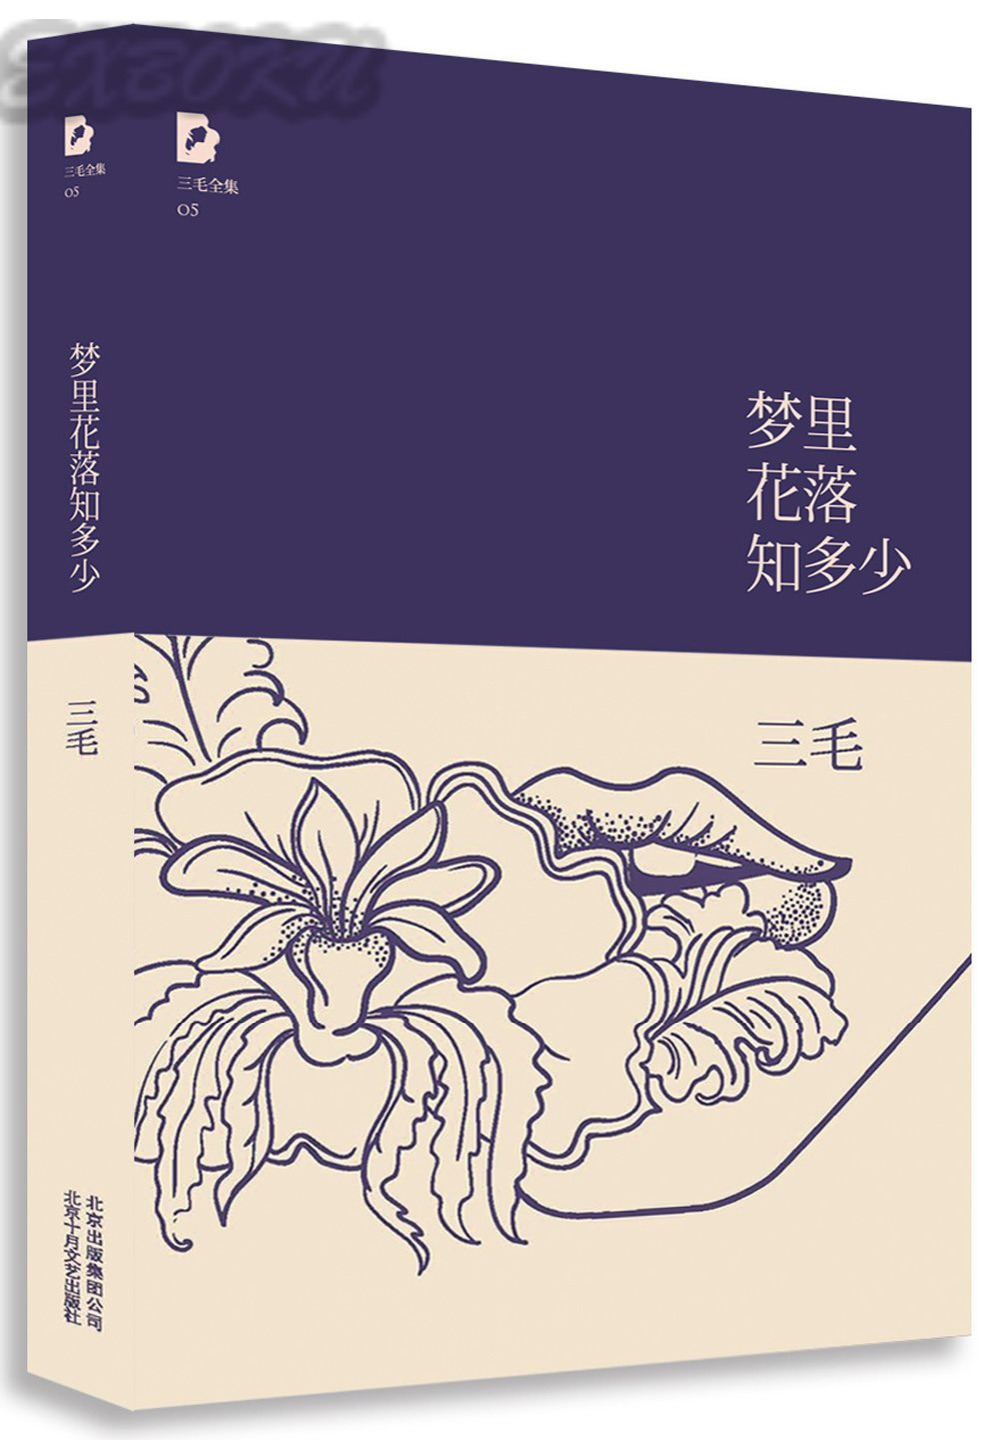 Never-flower In Never-dream Meng Li Hua Luo Zhi Duo Shao By San Mao / Chinese Most Famous Story Fiction Book